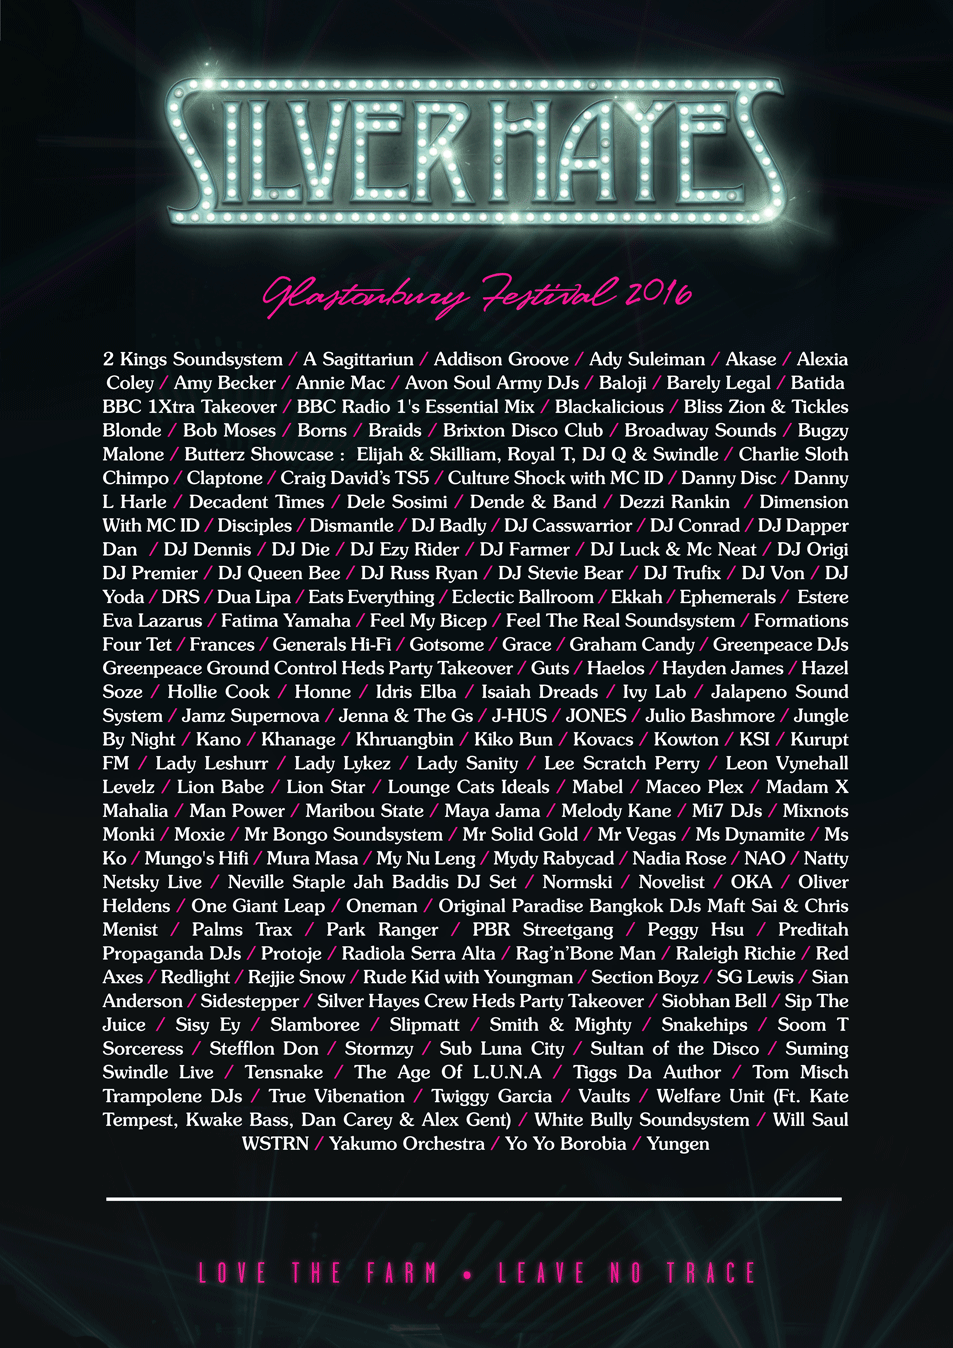 glasto-silver-hayes-lineup-flyer-2016